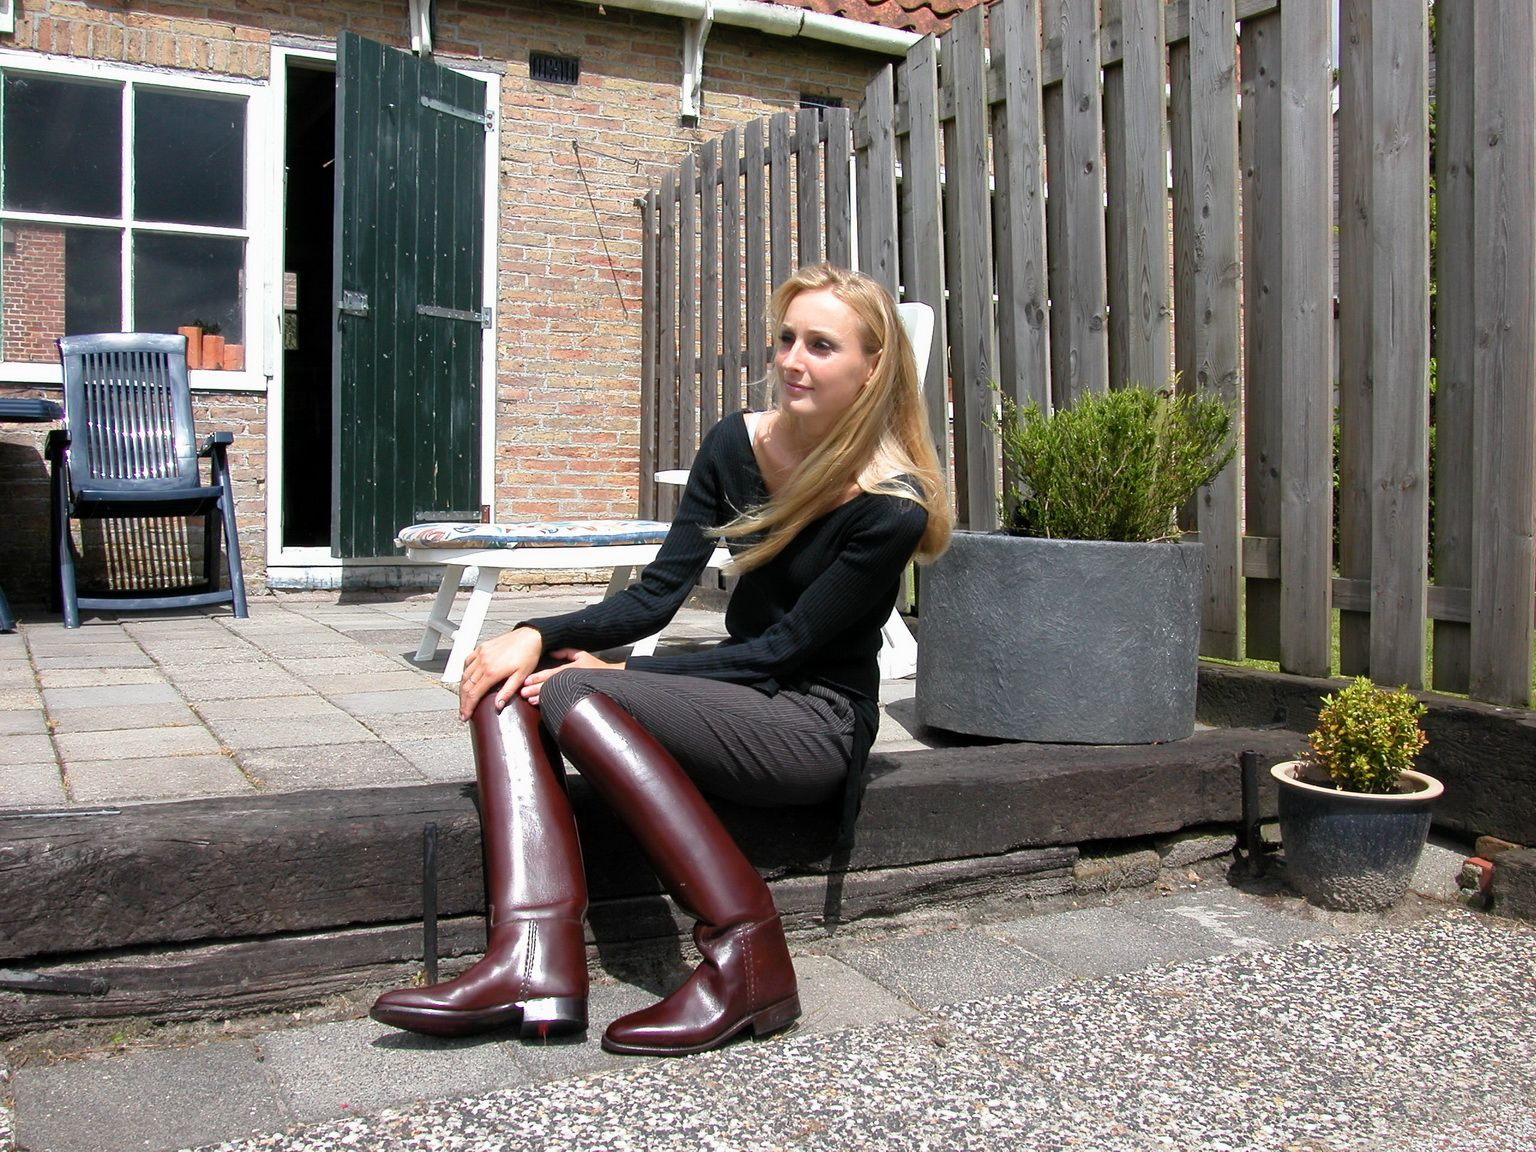 Modeling Gorgeous Blonde Boots In 2019 Maroon Riding wn0kOP